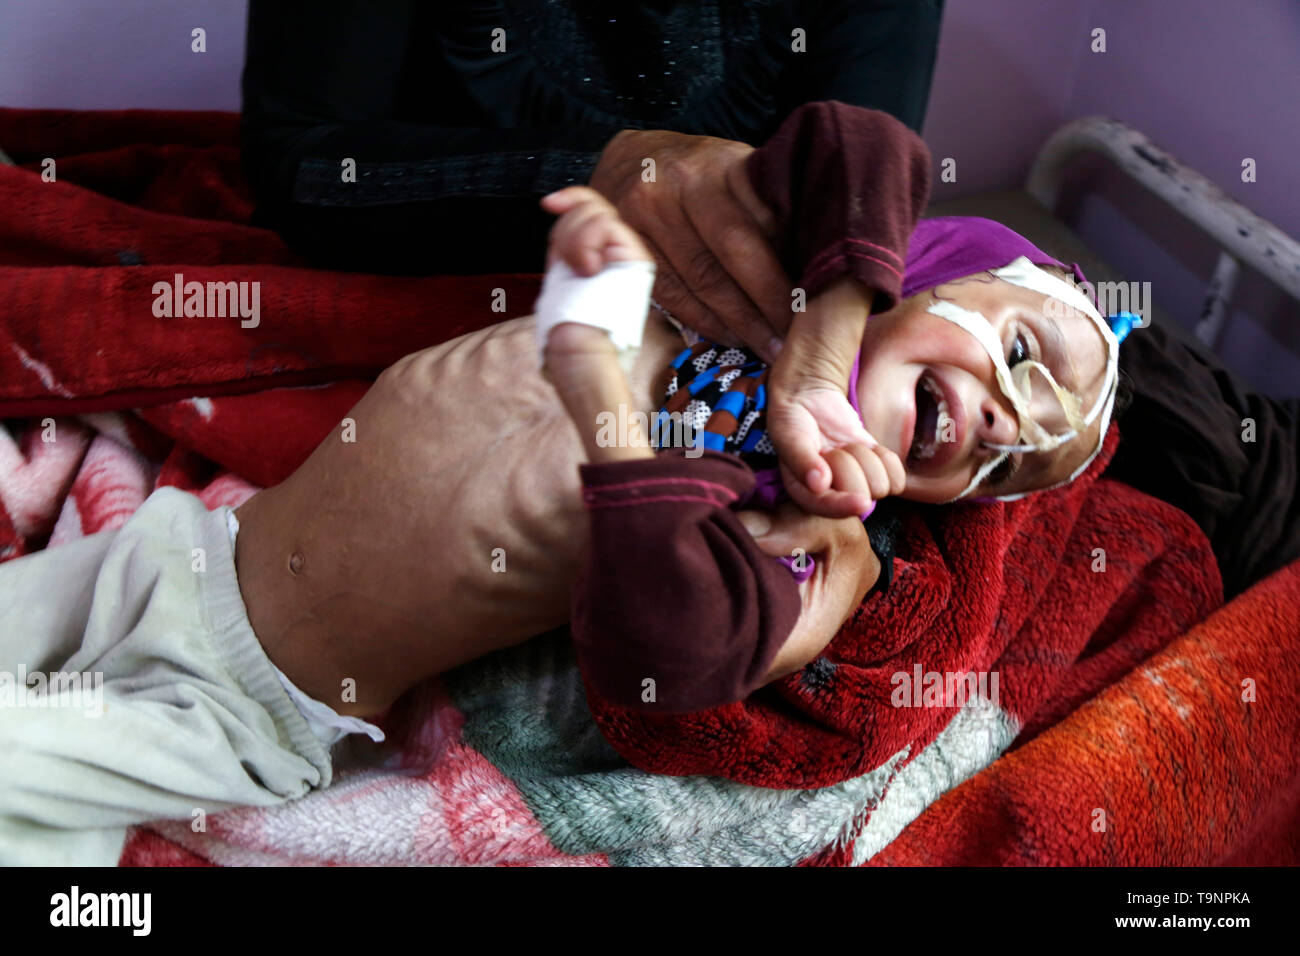 (190520) -- SANAA, May 20, 2019 (Xinhua) -- A mother shows the chest of her malnourished daughter who lies on a bed while receiving treatment at a malnutrition care-center in Sanaa, Yemen, on May 19, 2019. With 360,000 children suffering from severe acute malnutrition and 2.5 million - or half of all children under the age of five - stunted, the country is spiralling perilously close to the brink, Executive Director of the United Nations Children's Fund  (UNICEF) Henrietta Fore warned. (Xinhua/Mohammed Mohammed) - Stock Image